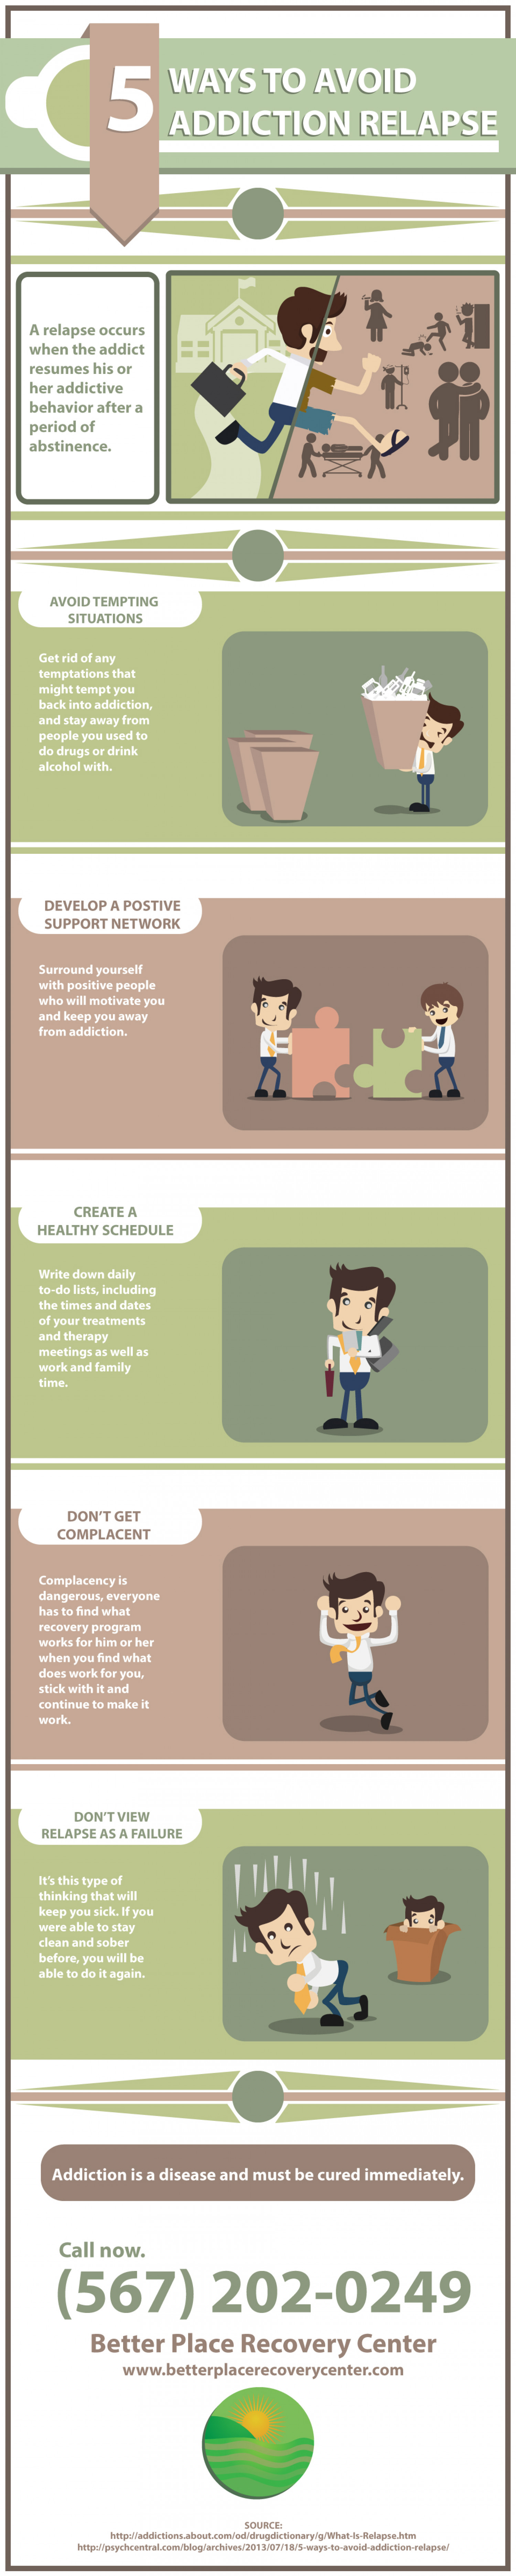 5 Ways to Avoid Addiction Relapse | Better Place Recovery Center Infographic